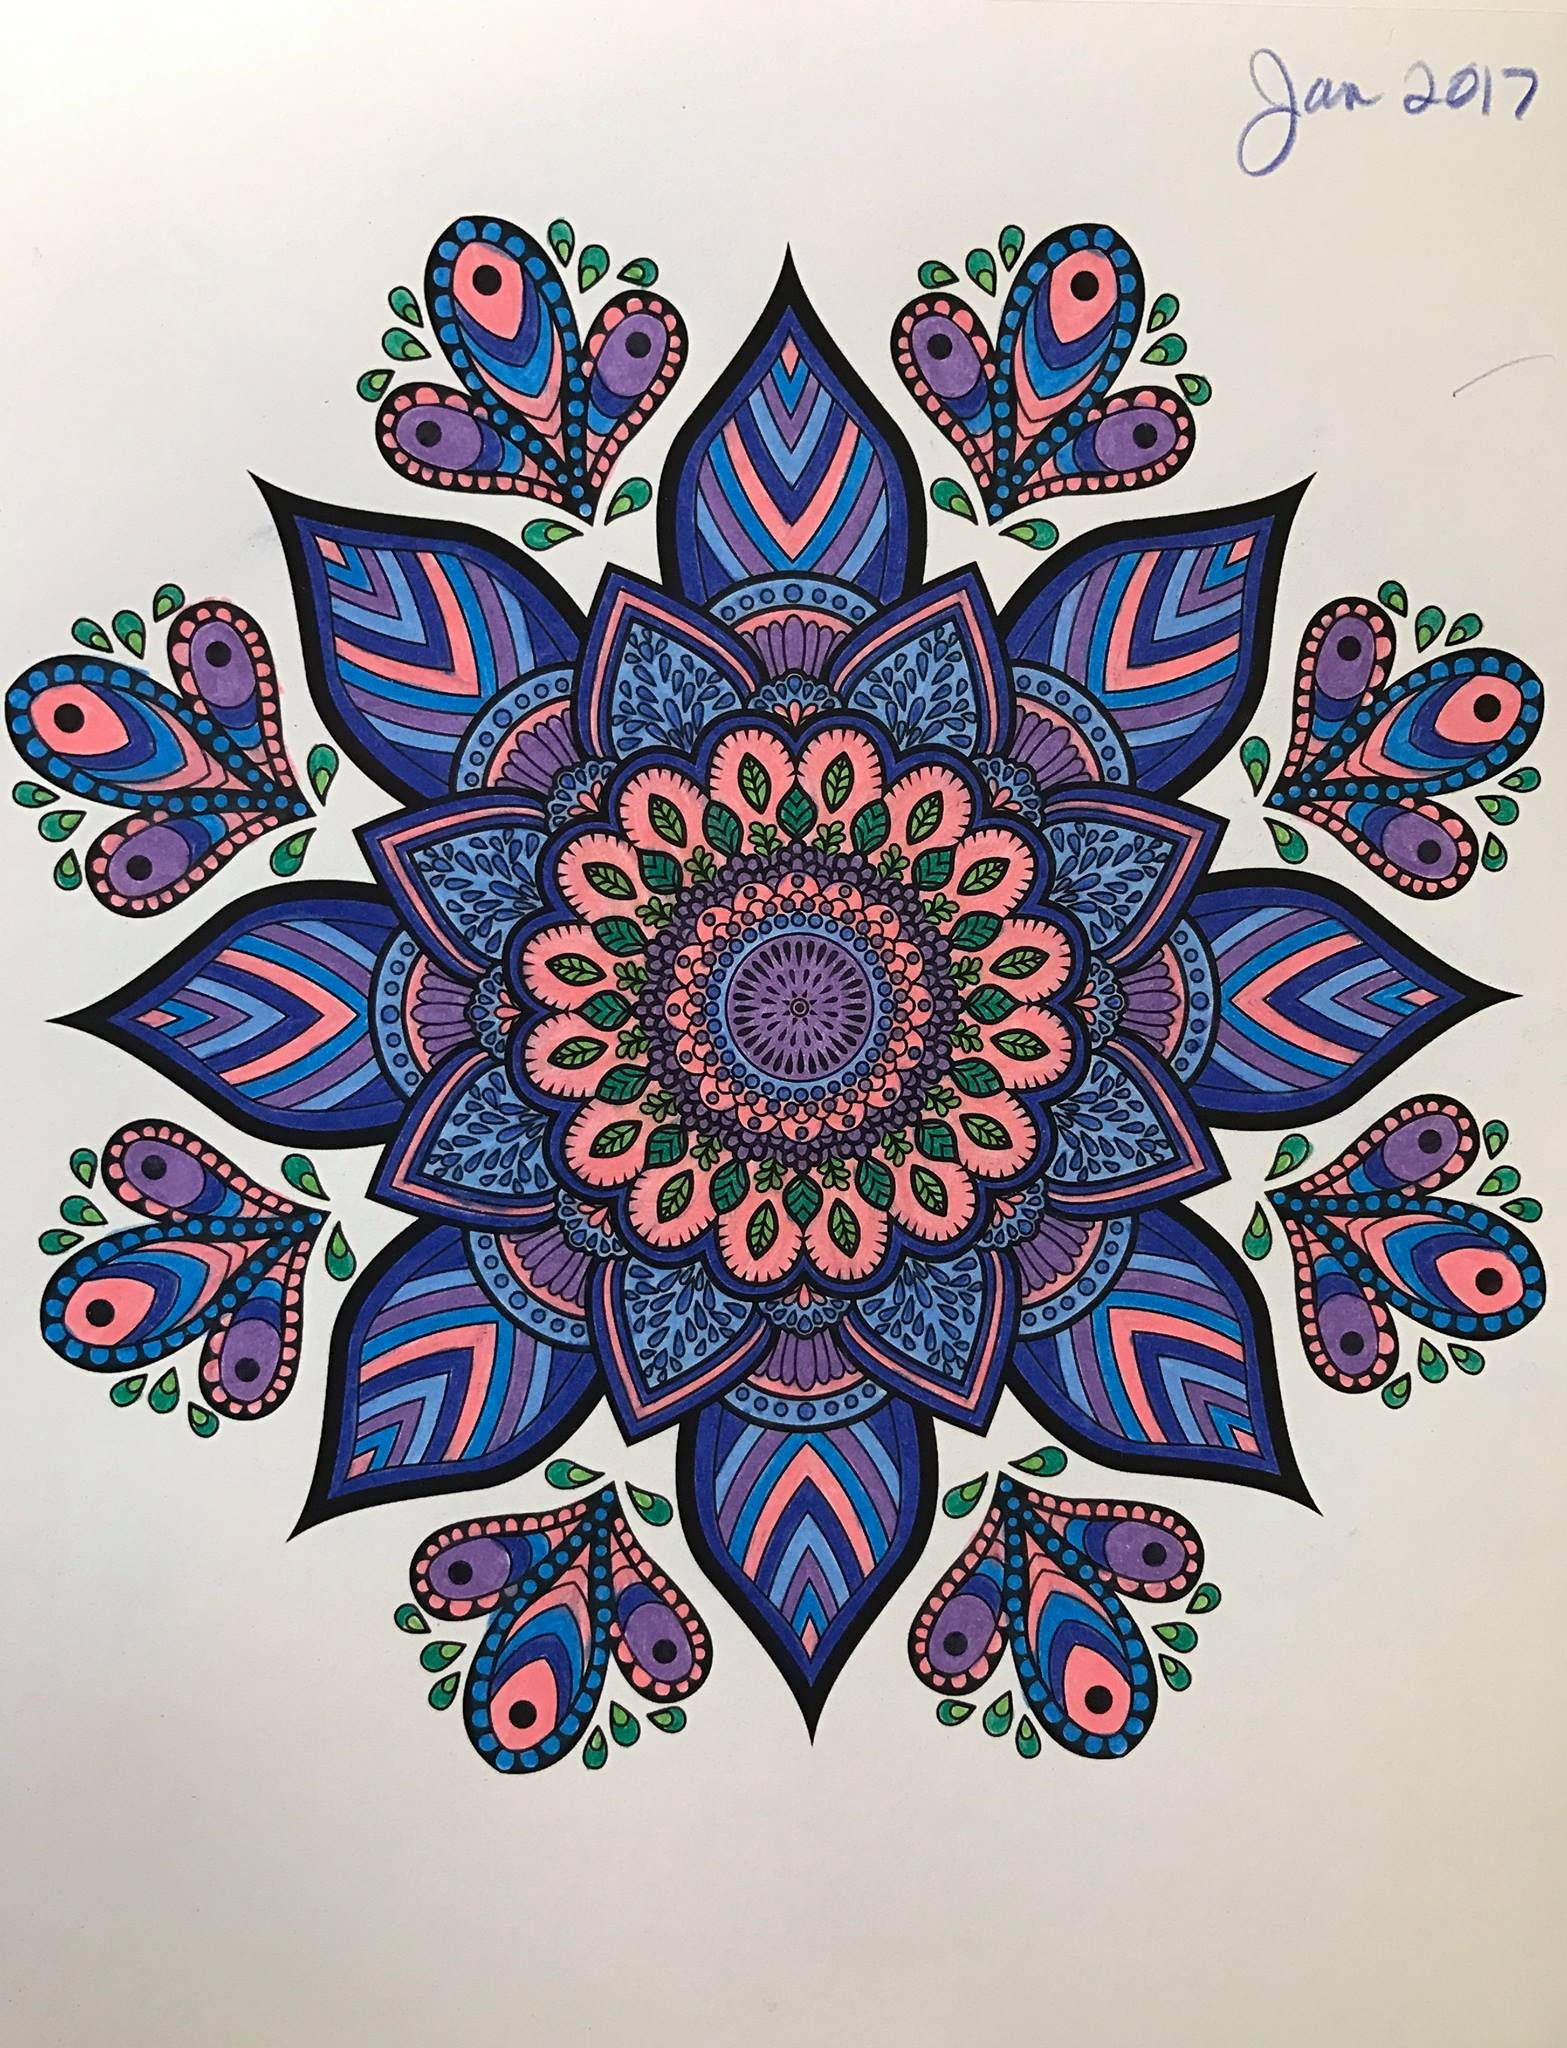 - ColorIt Mandalas Volume 2 Colorist: Debbie Christensen Seddell